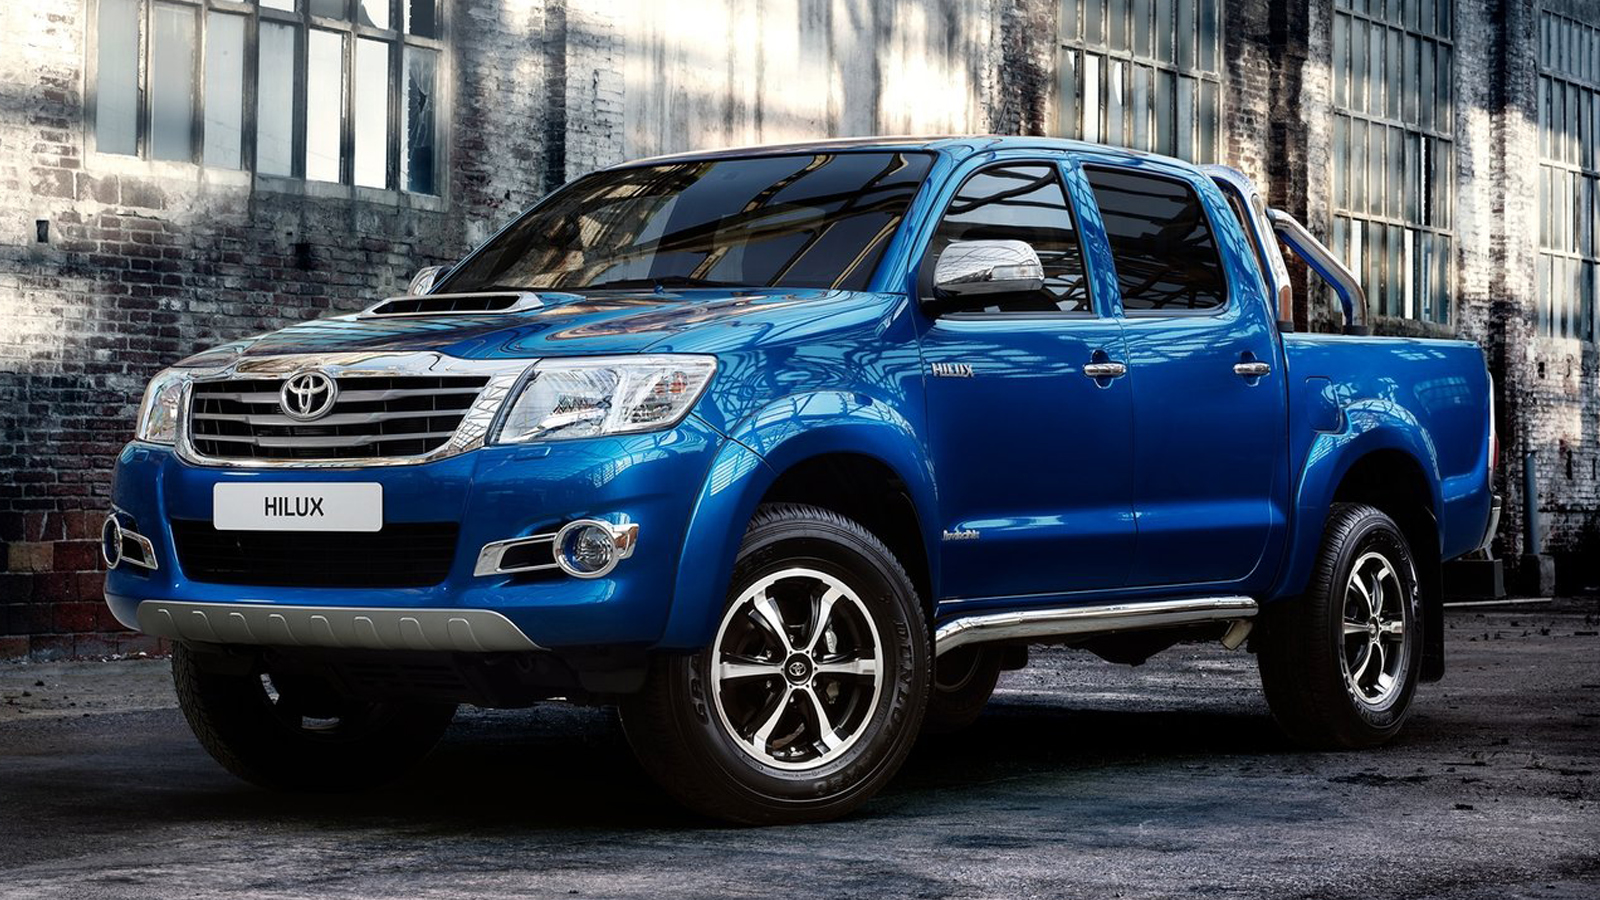 2014 Toyota Hilux Invincible | CARWP